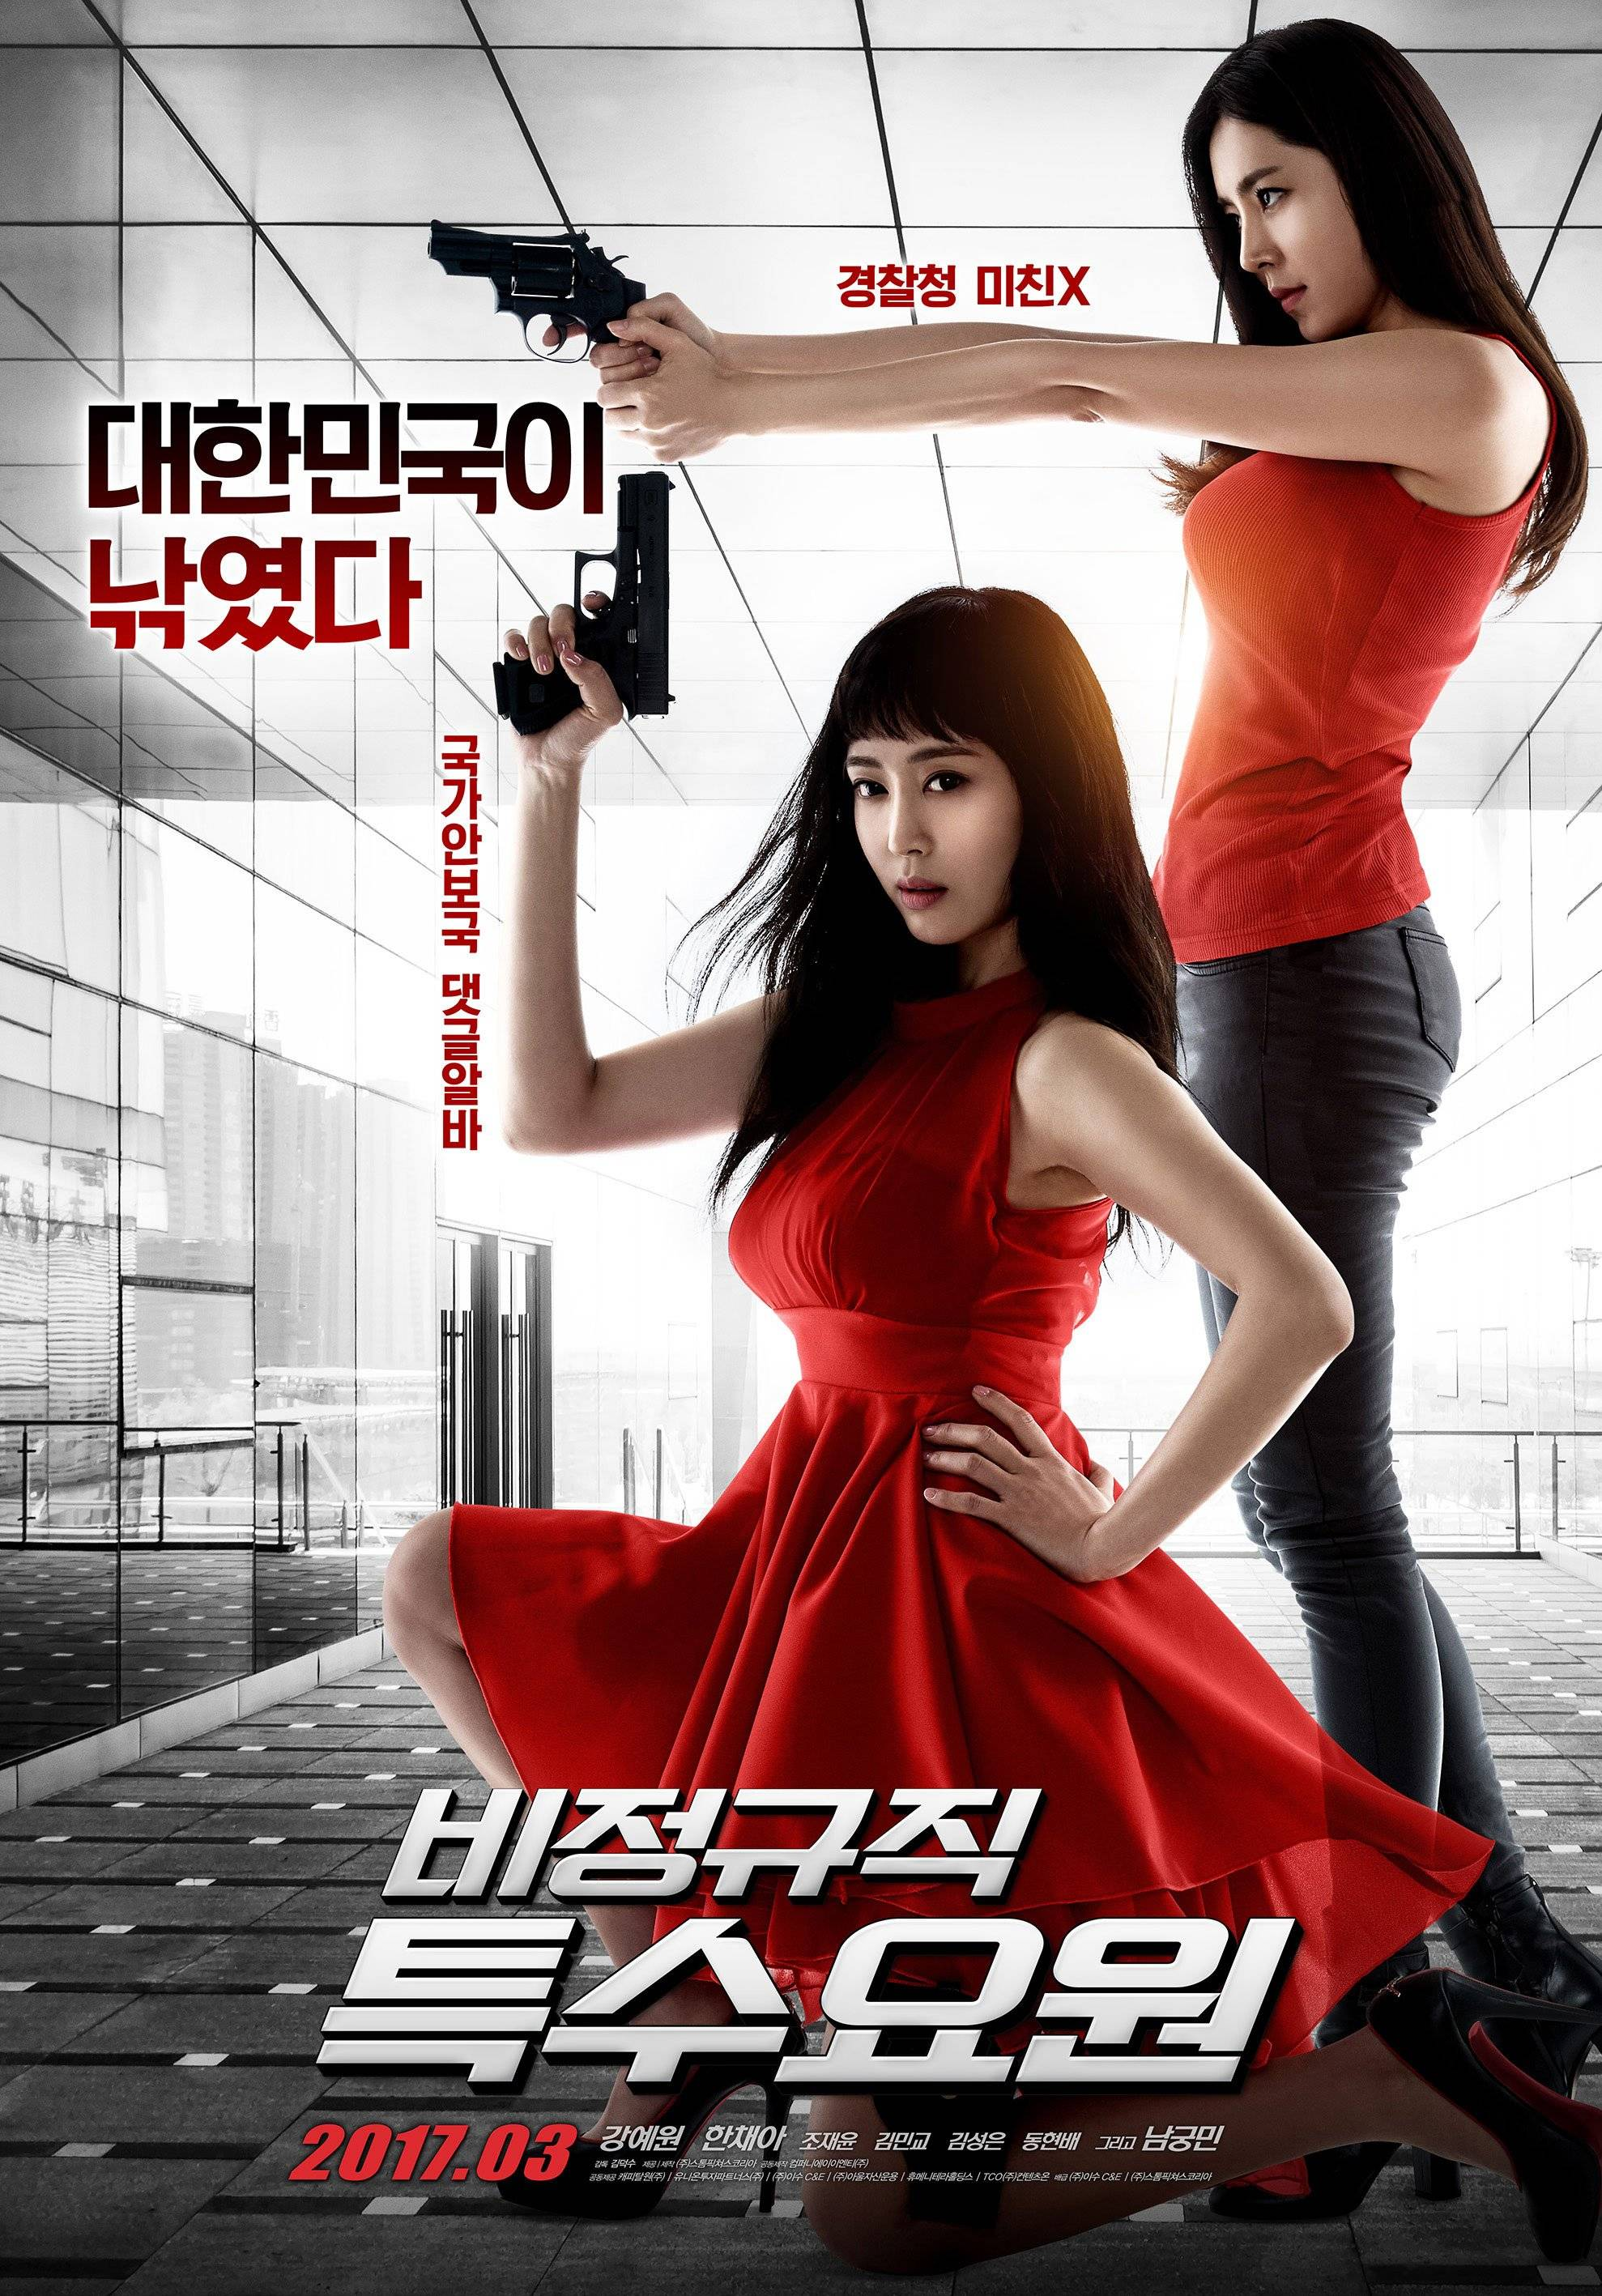 [Video + Photos] 2nd trailer, new Poster and Choi Soo